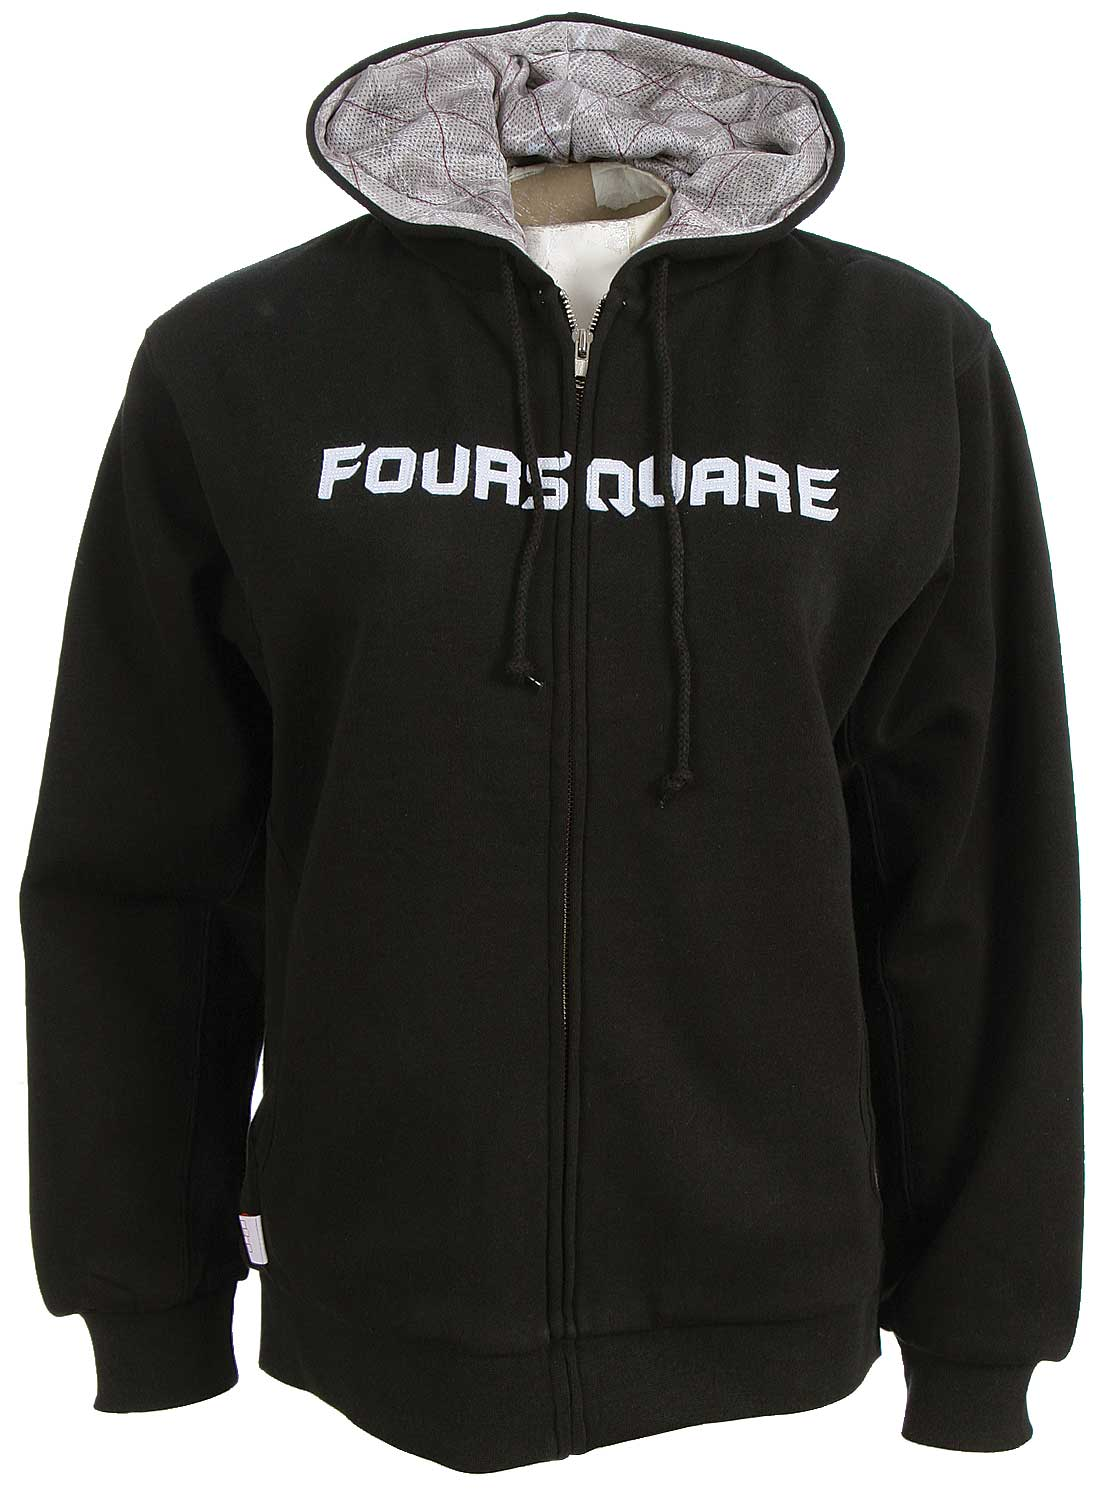 Snowboard The Foursquare Pasley Lined Fullzip Women's Hooded Sweatshirt. Another great hoodie from Foursquare. 80% cotton 20% polyester 360 gm. - $34.95